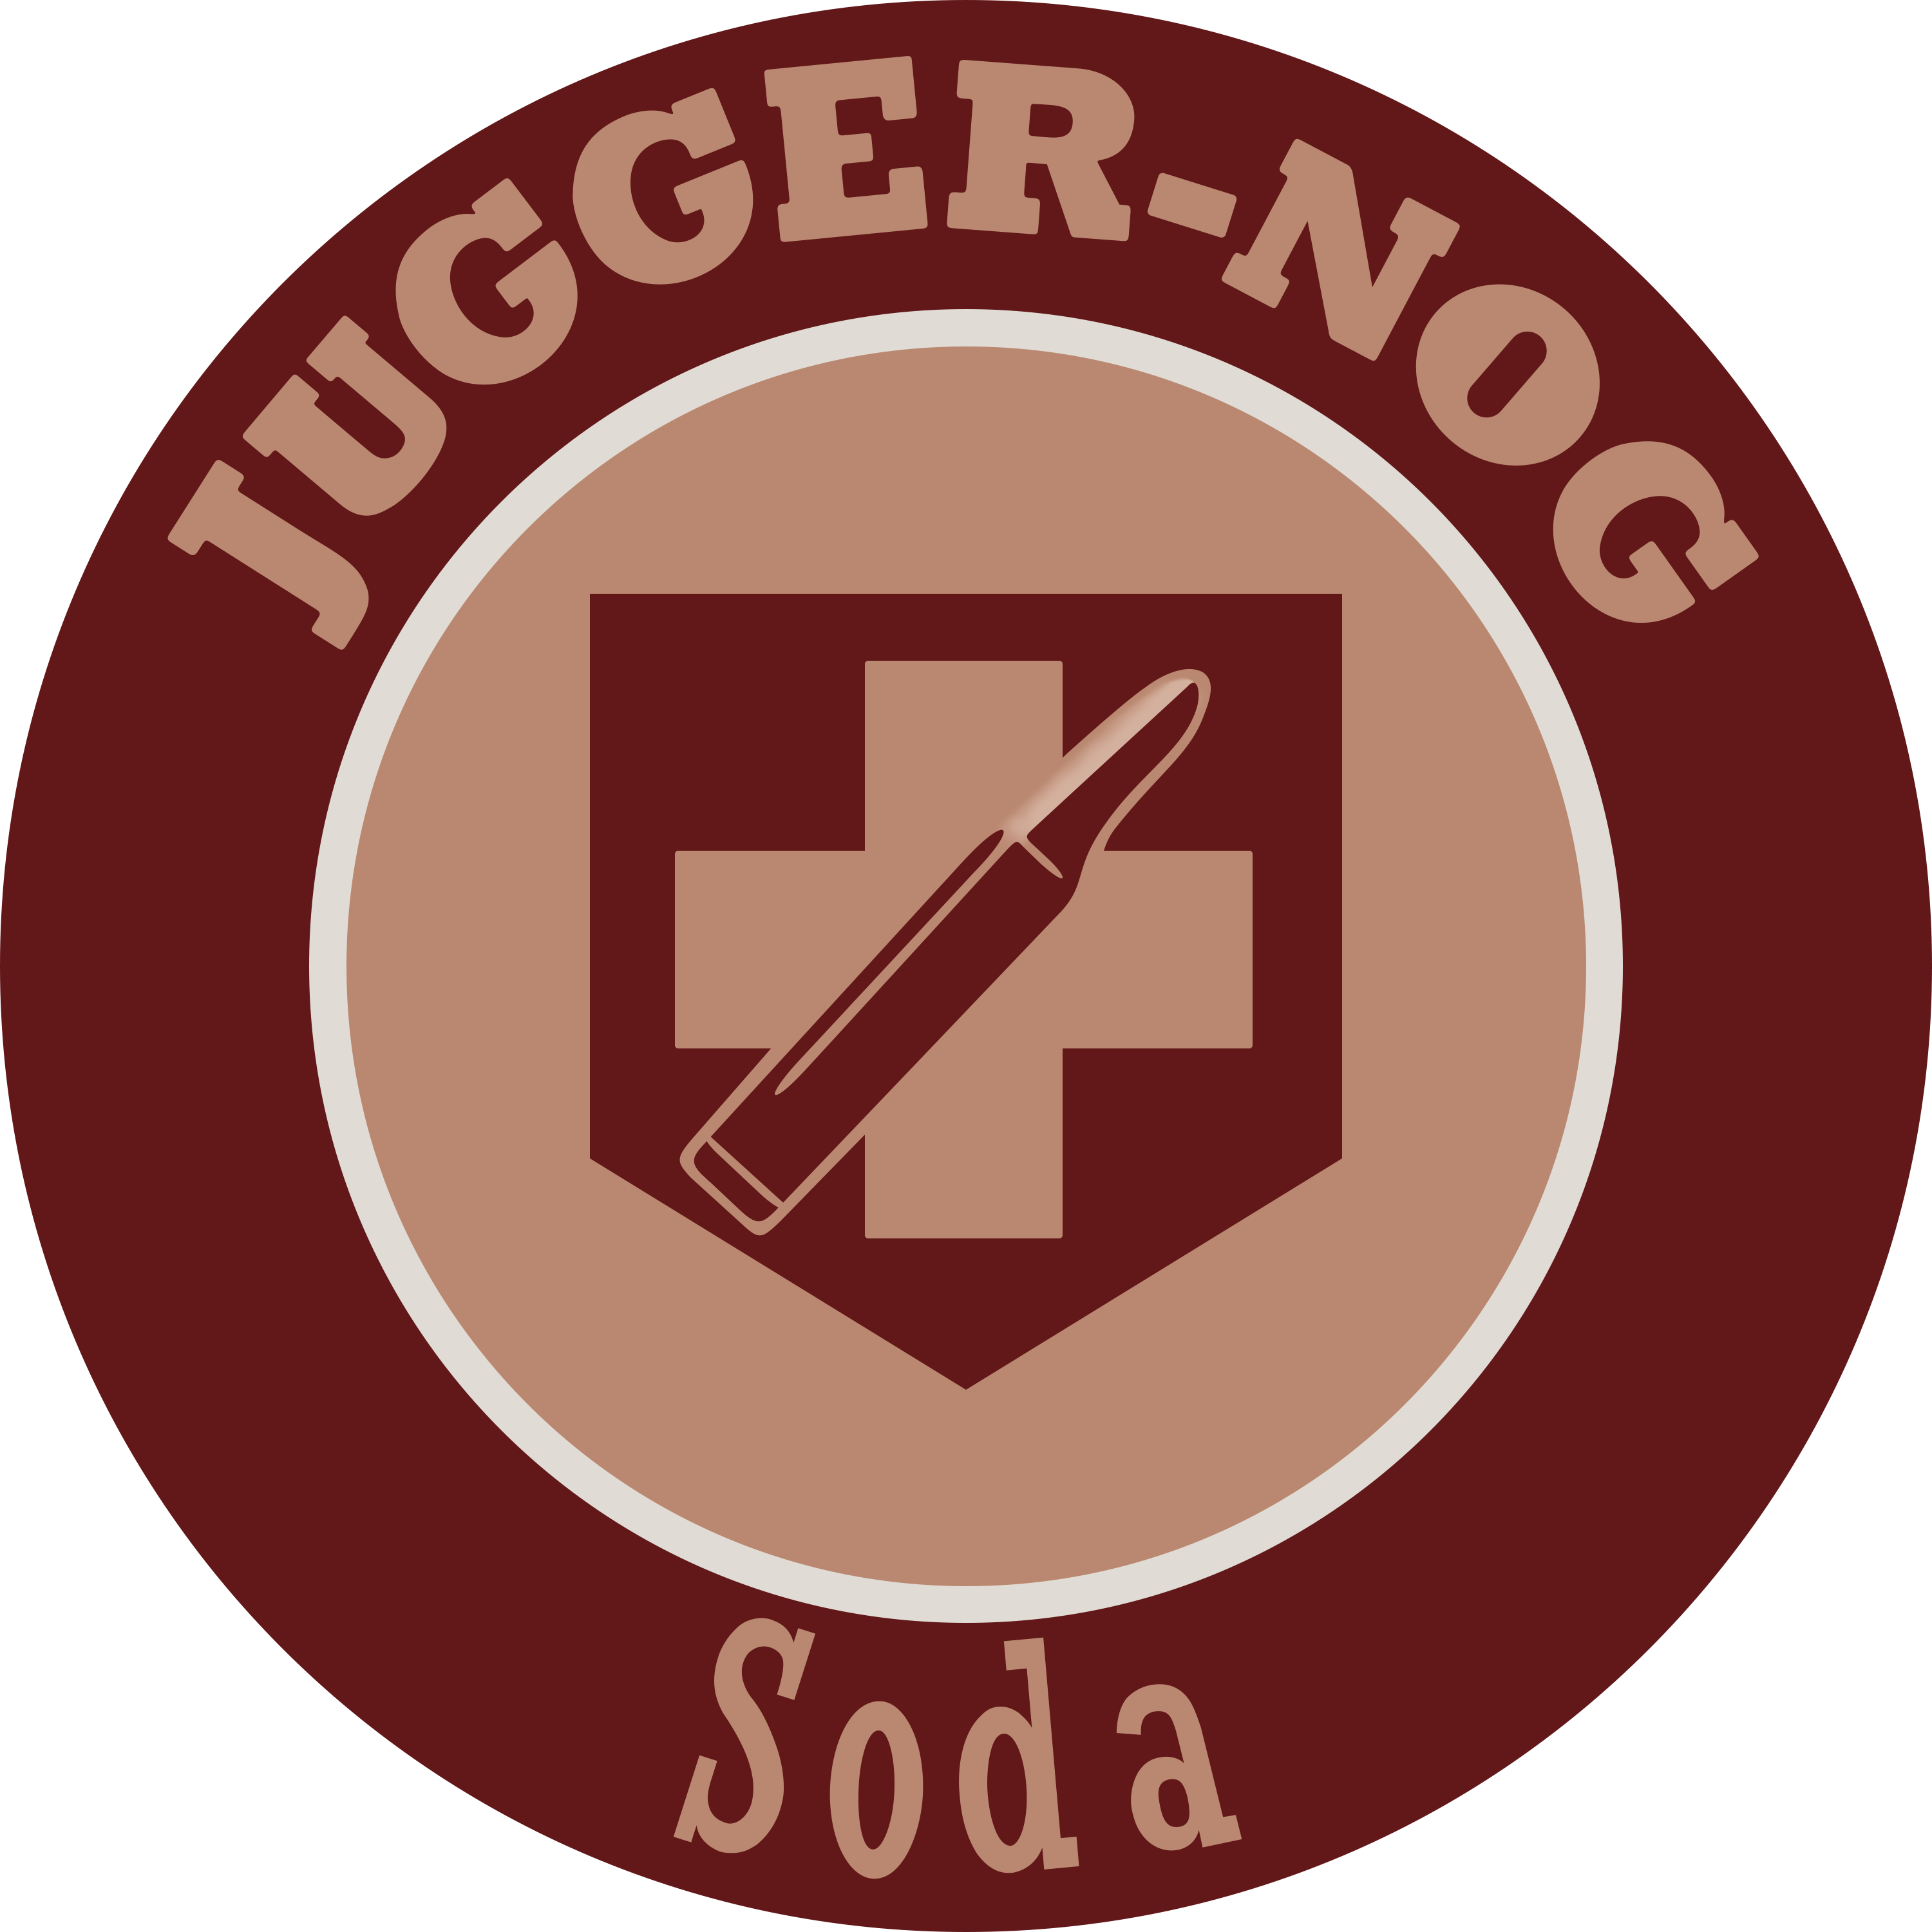 Juggernog Logo from Treyarch zombies 3000x3000 Would be nice if 3000x3000